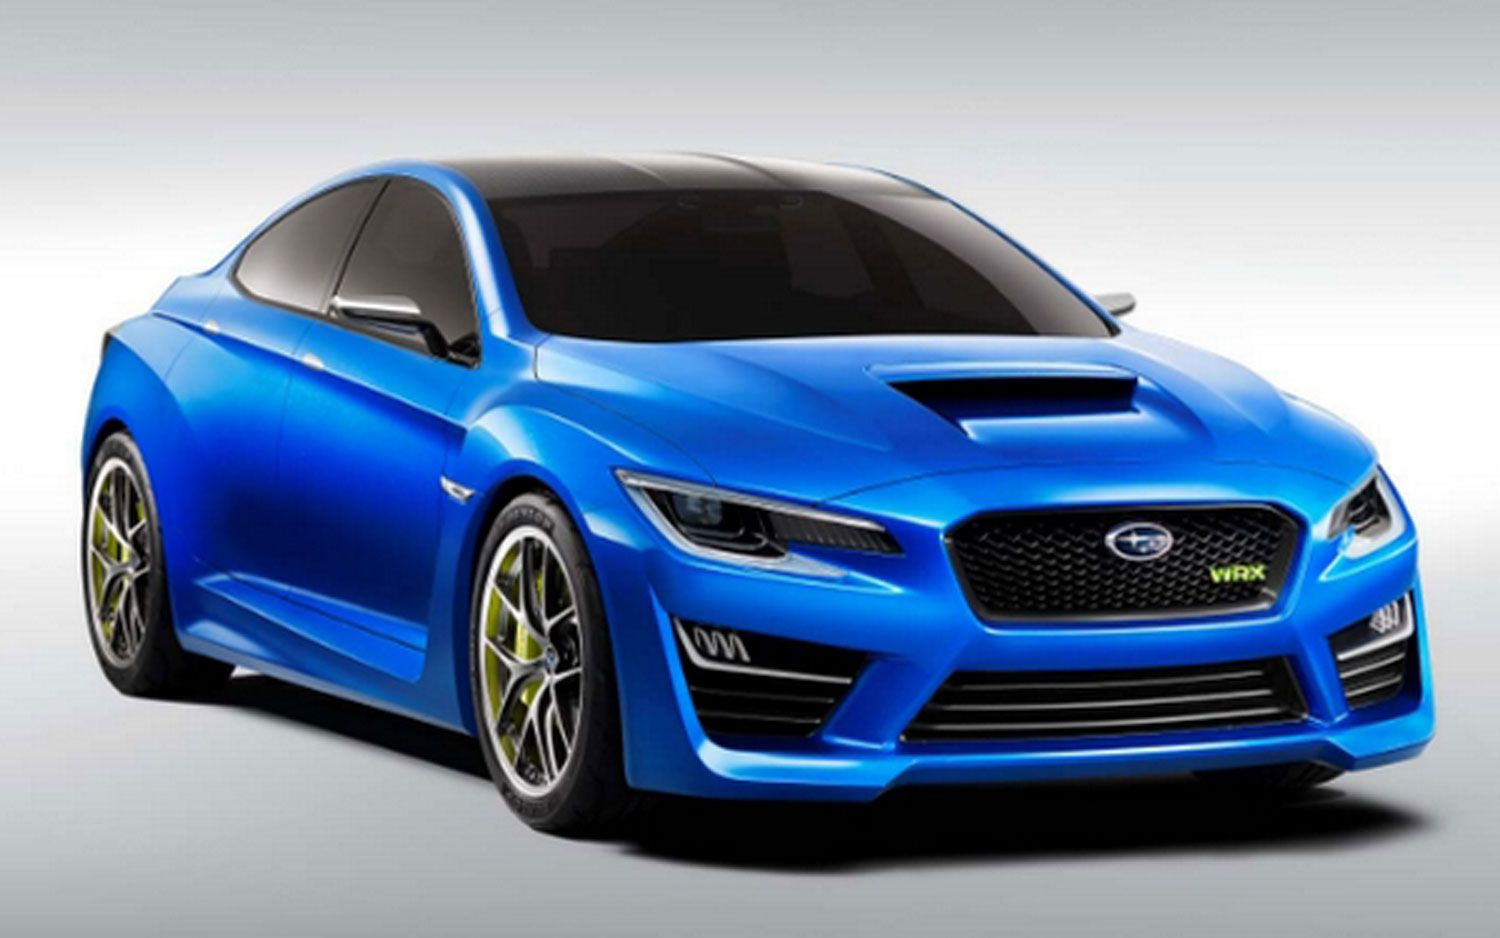 2014 subaru wrx concept the wrx adopts a body 2014 subaru wrx concept the wrx adopts a body style that most carmakers like to call a four door coupe